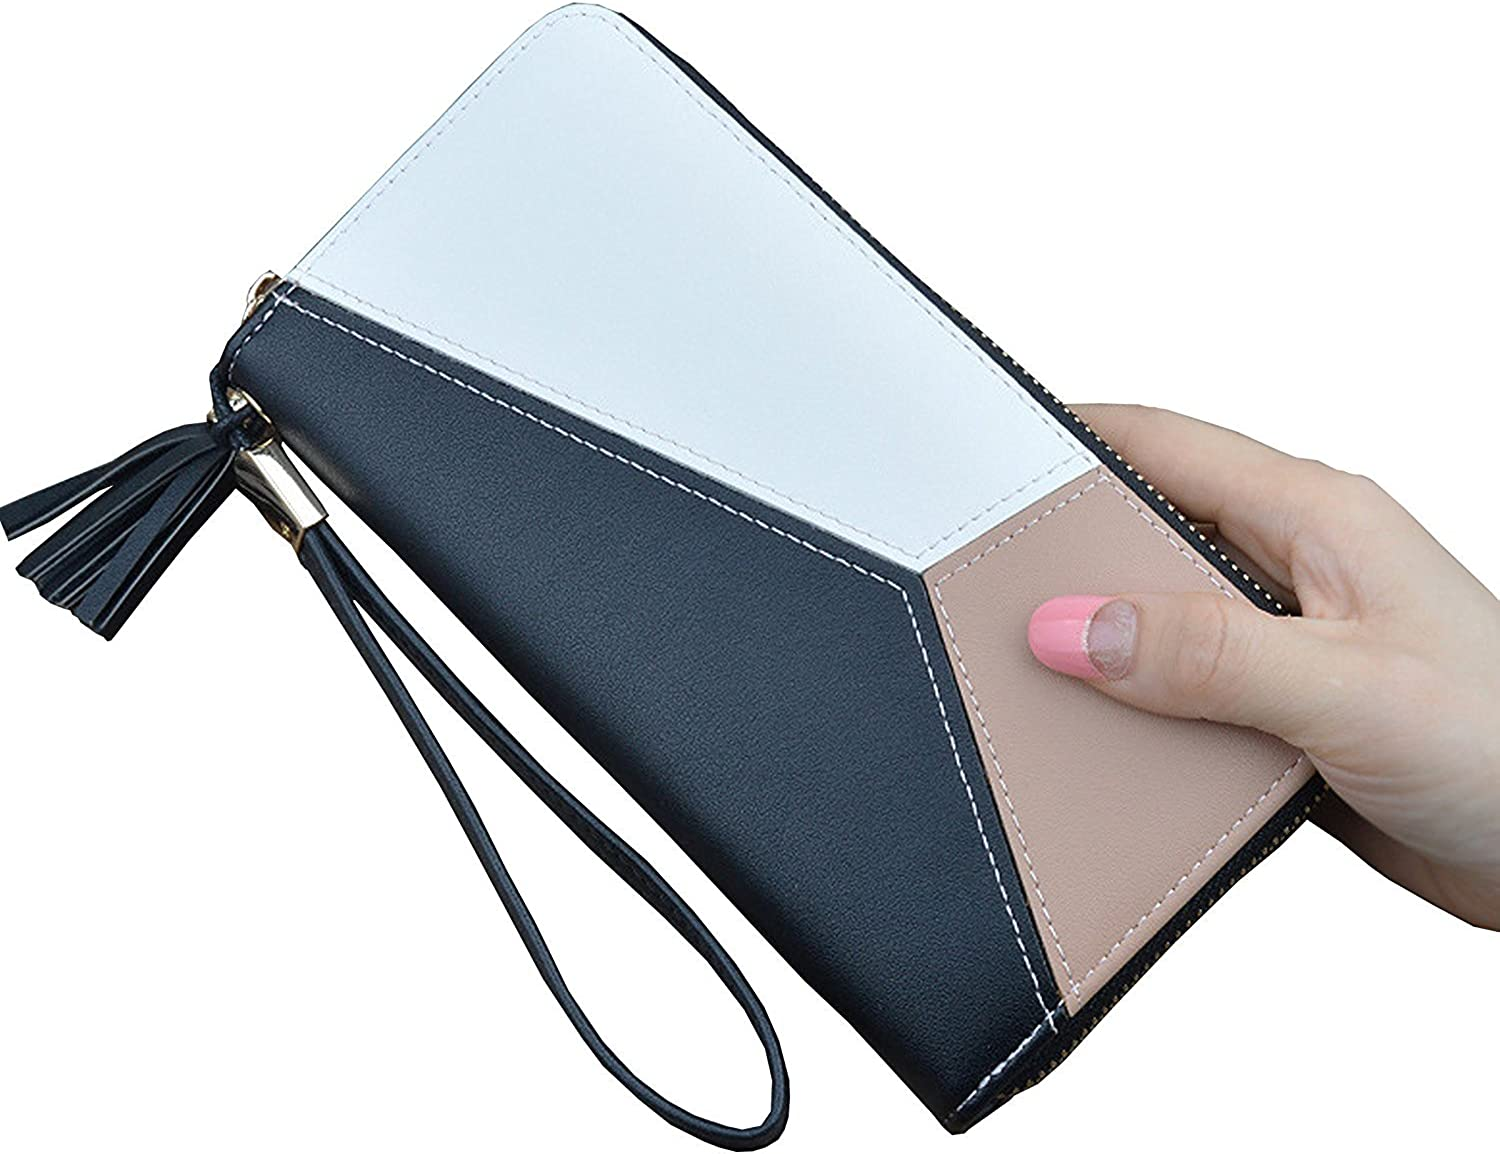 Colorful Unicorn Womens RFID Blocking Zip Around Wallet Genuine Leather Clutch Long Card Holder Organizer Wallets Large Travel Purse